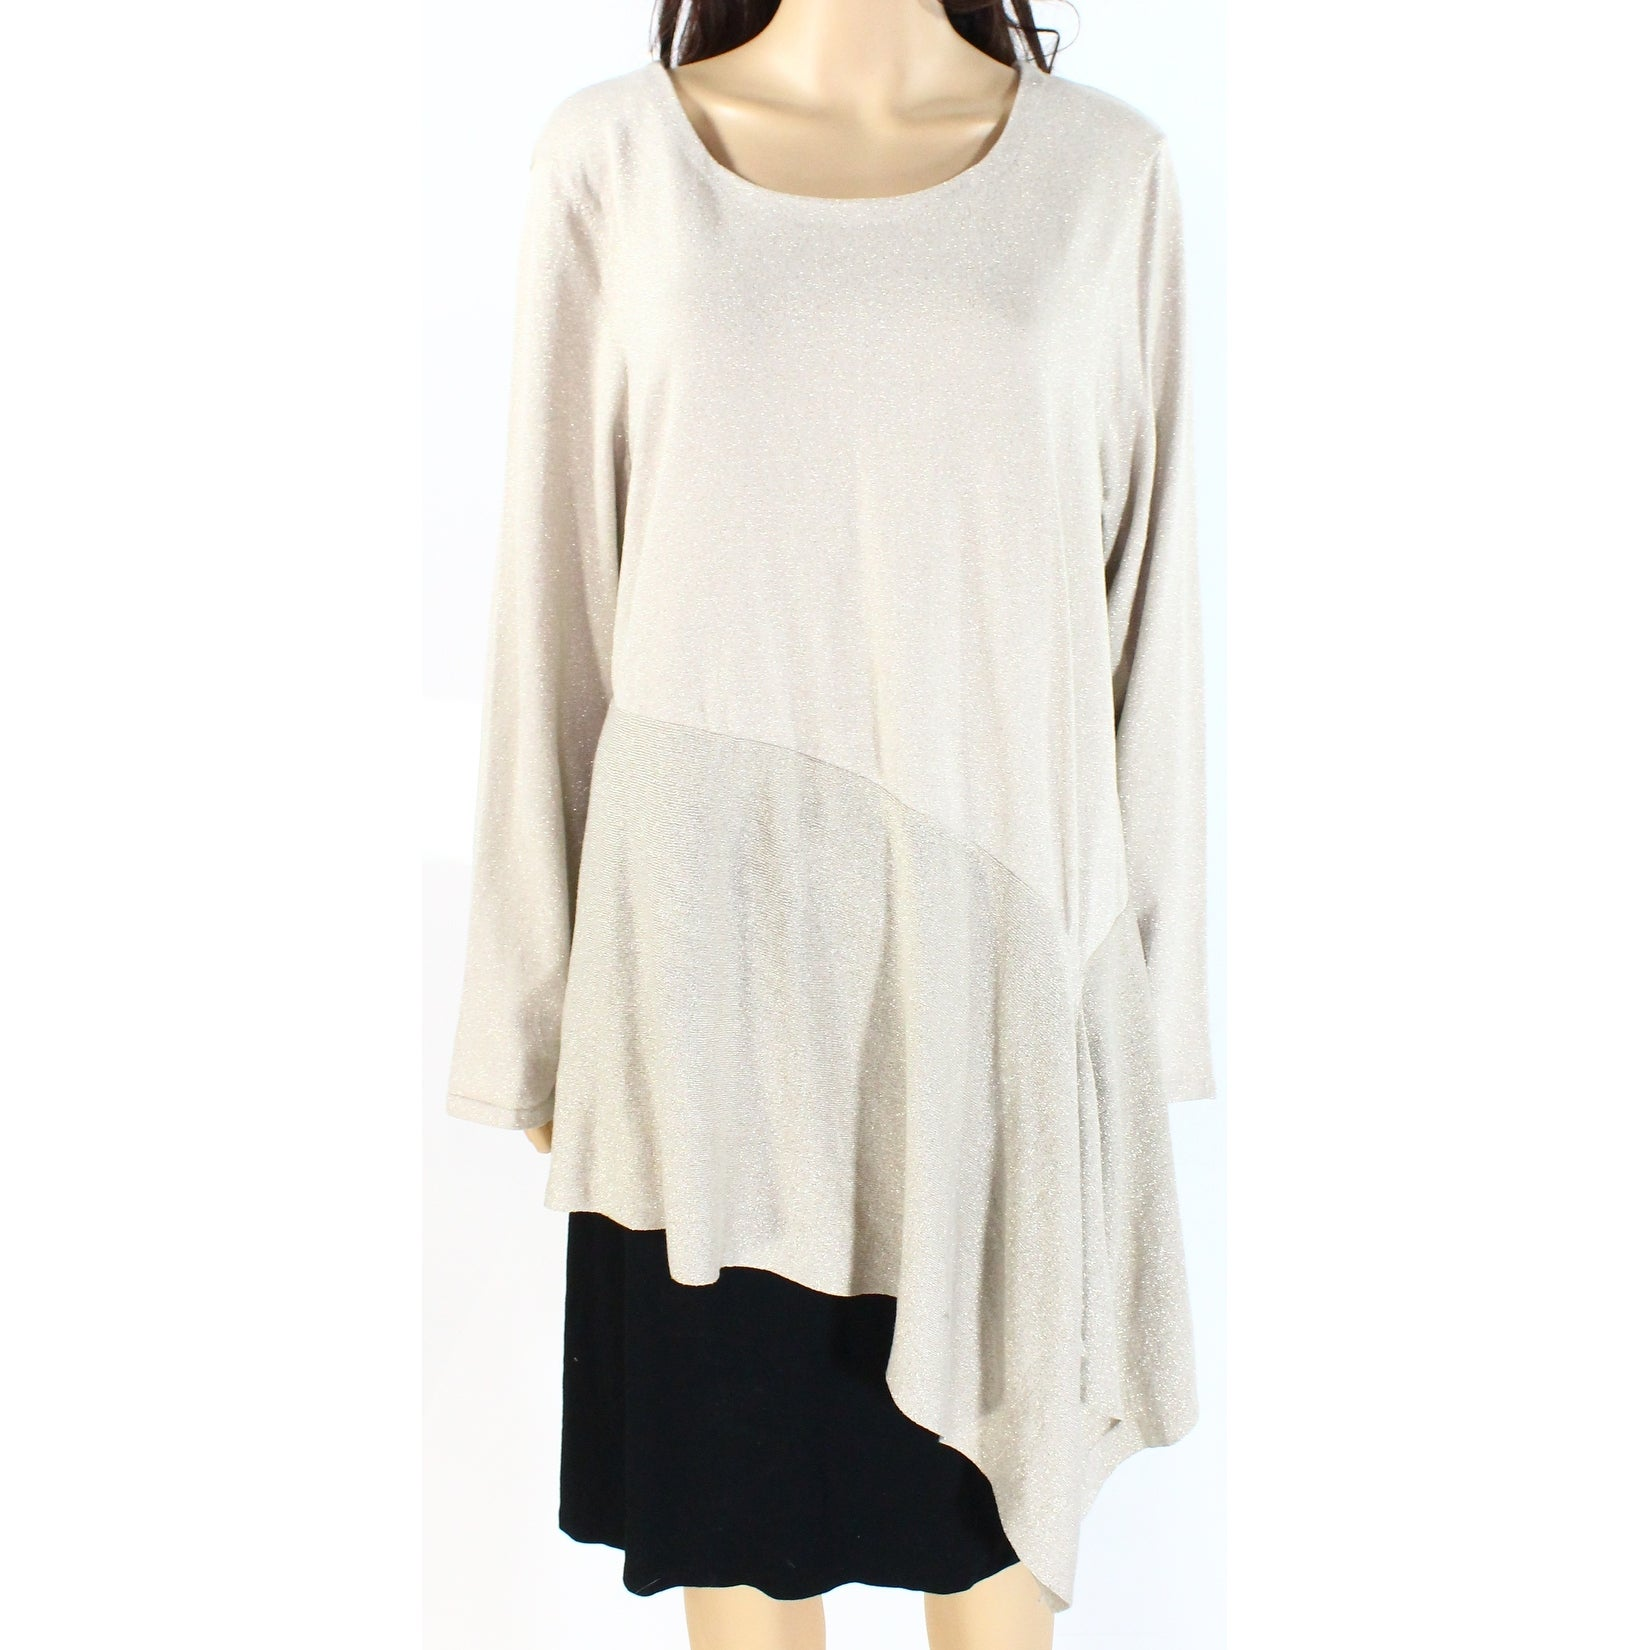 Alfani New Women/'s Beige Lace Trimmed Crewneck Sweater Top XL